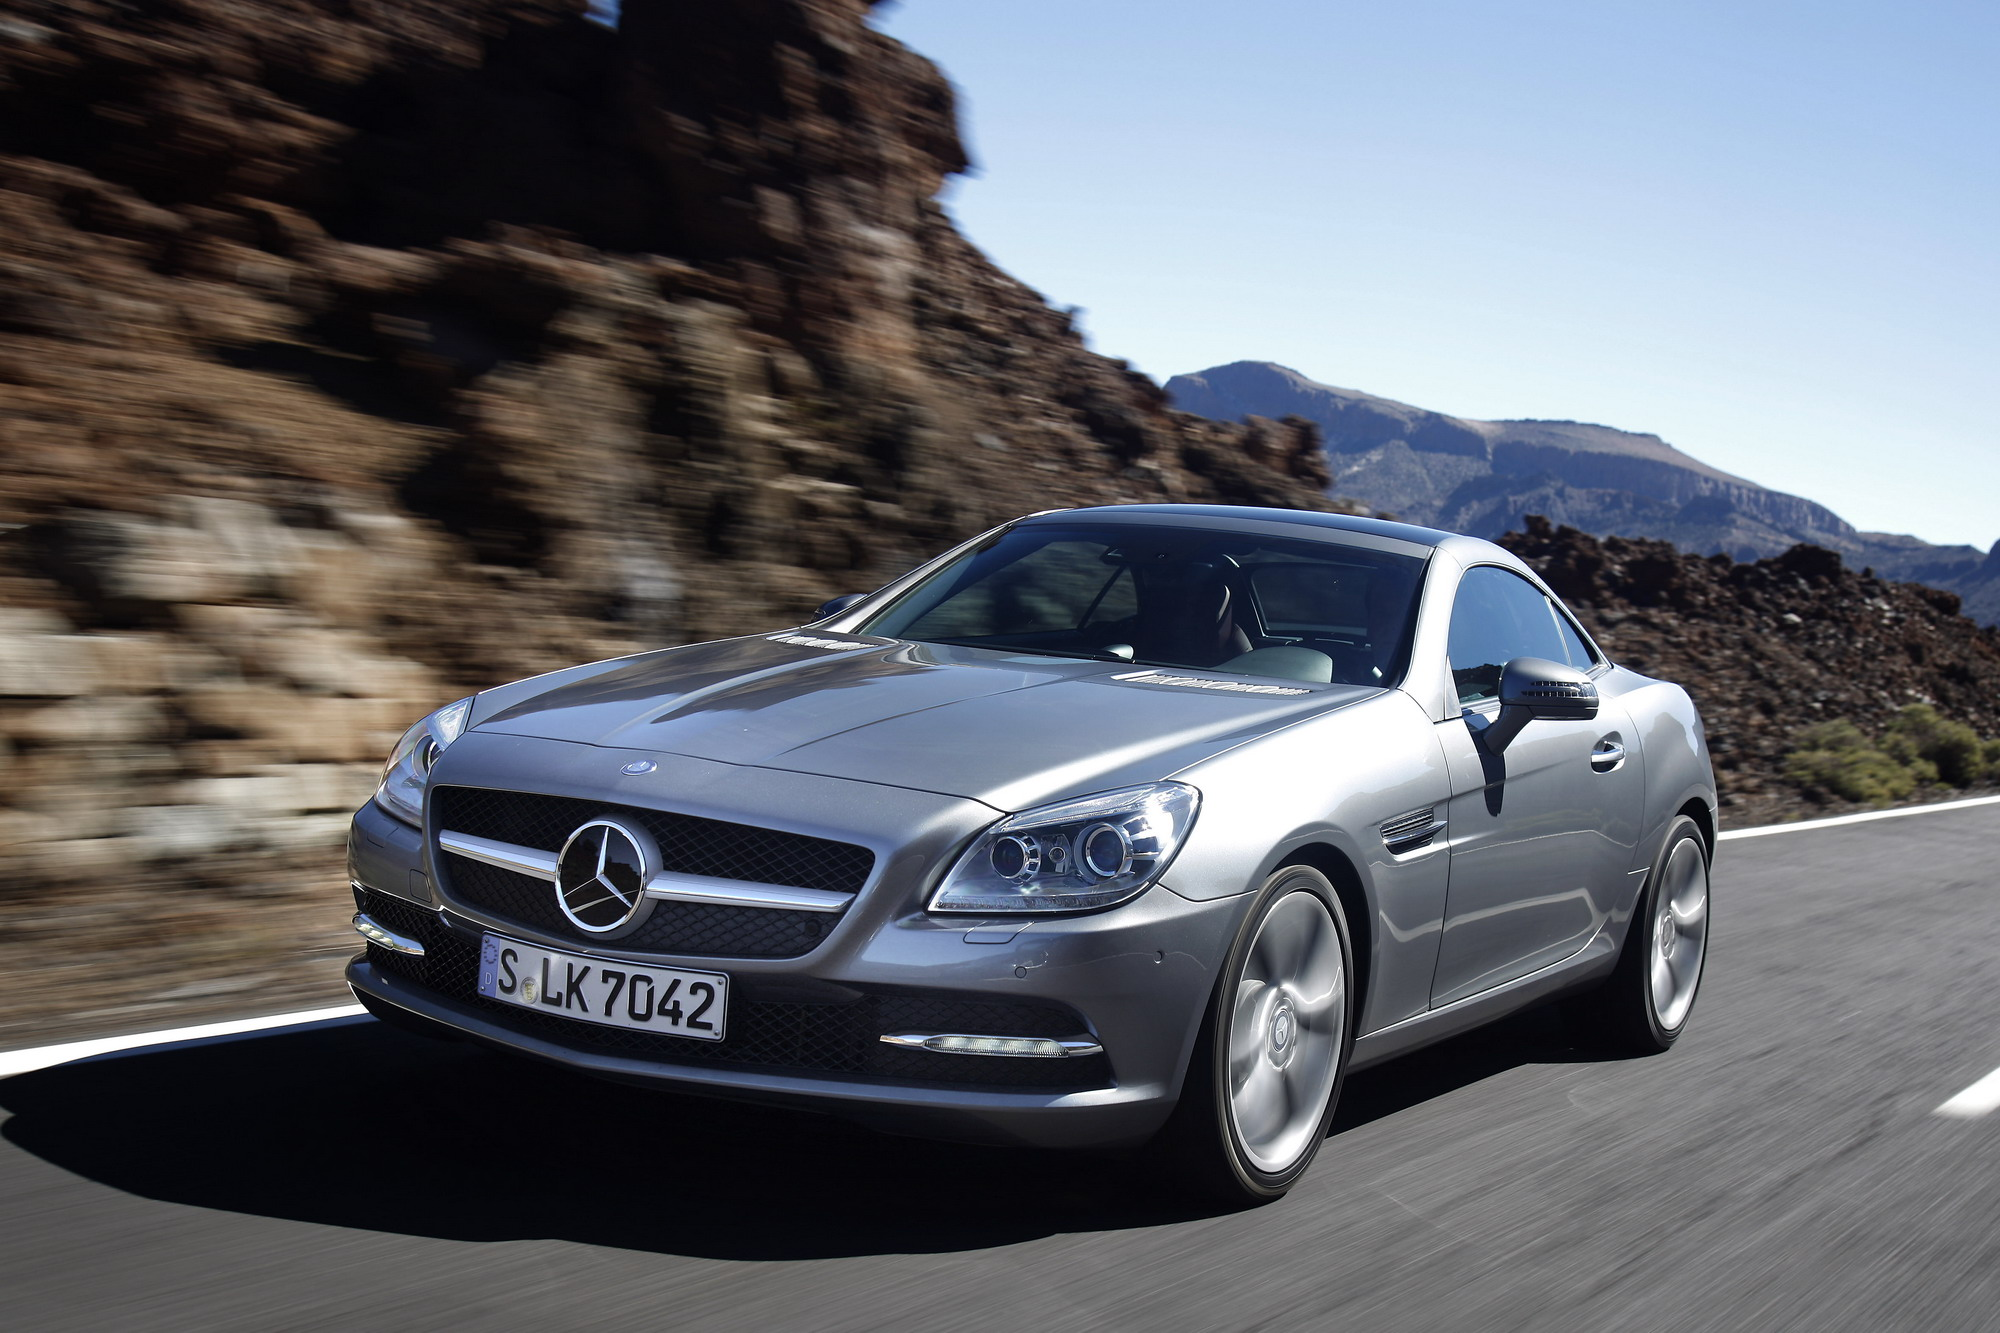 2012 Mercedes Benz Slk Class Top Speed